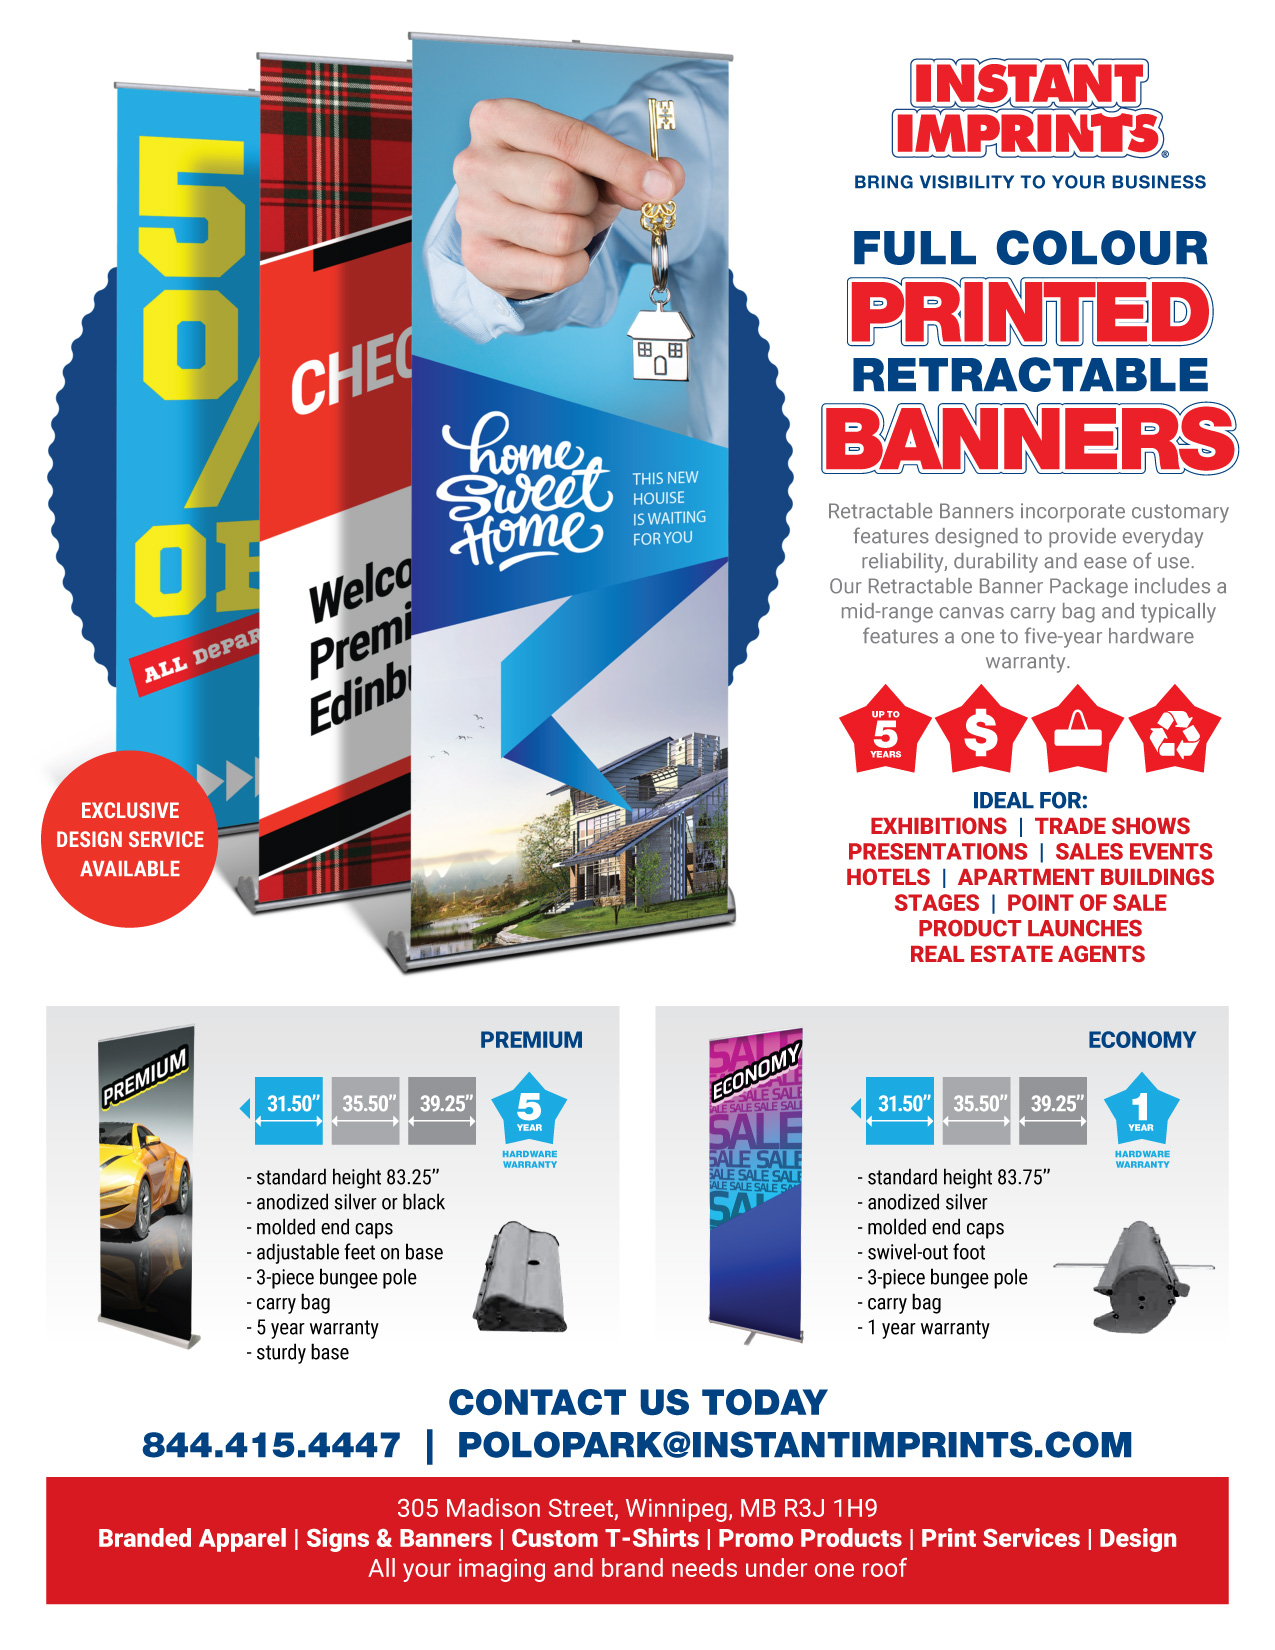 InstantImprints_retractablebanners